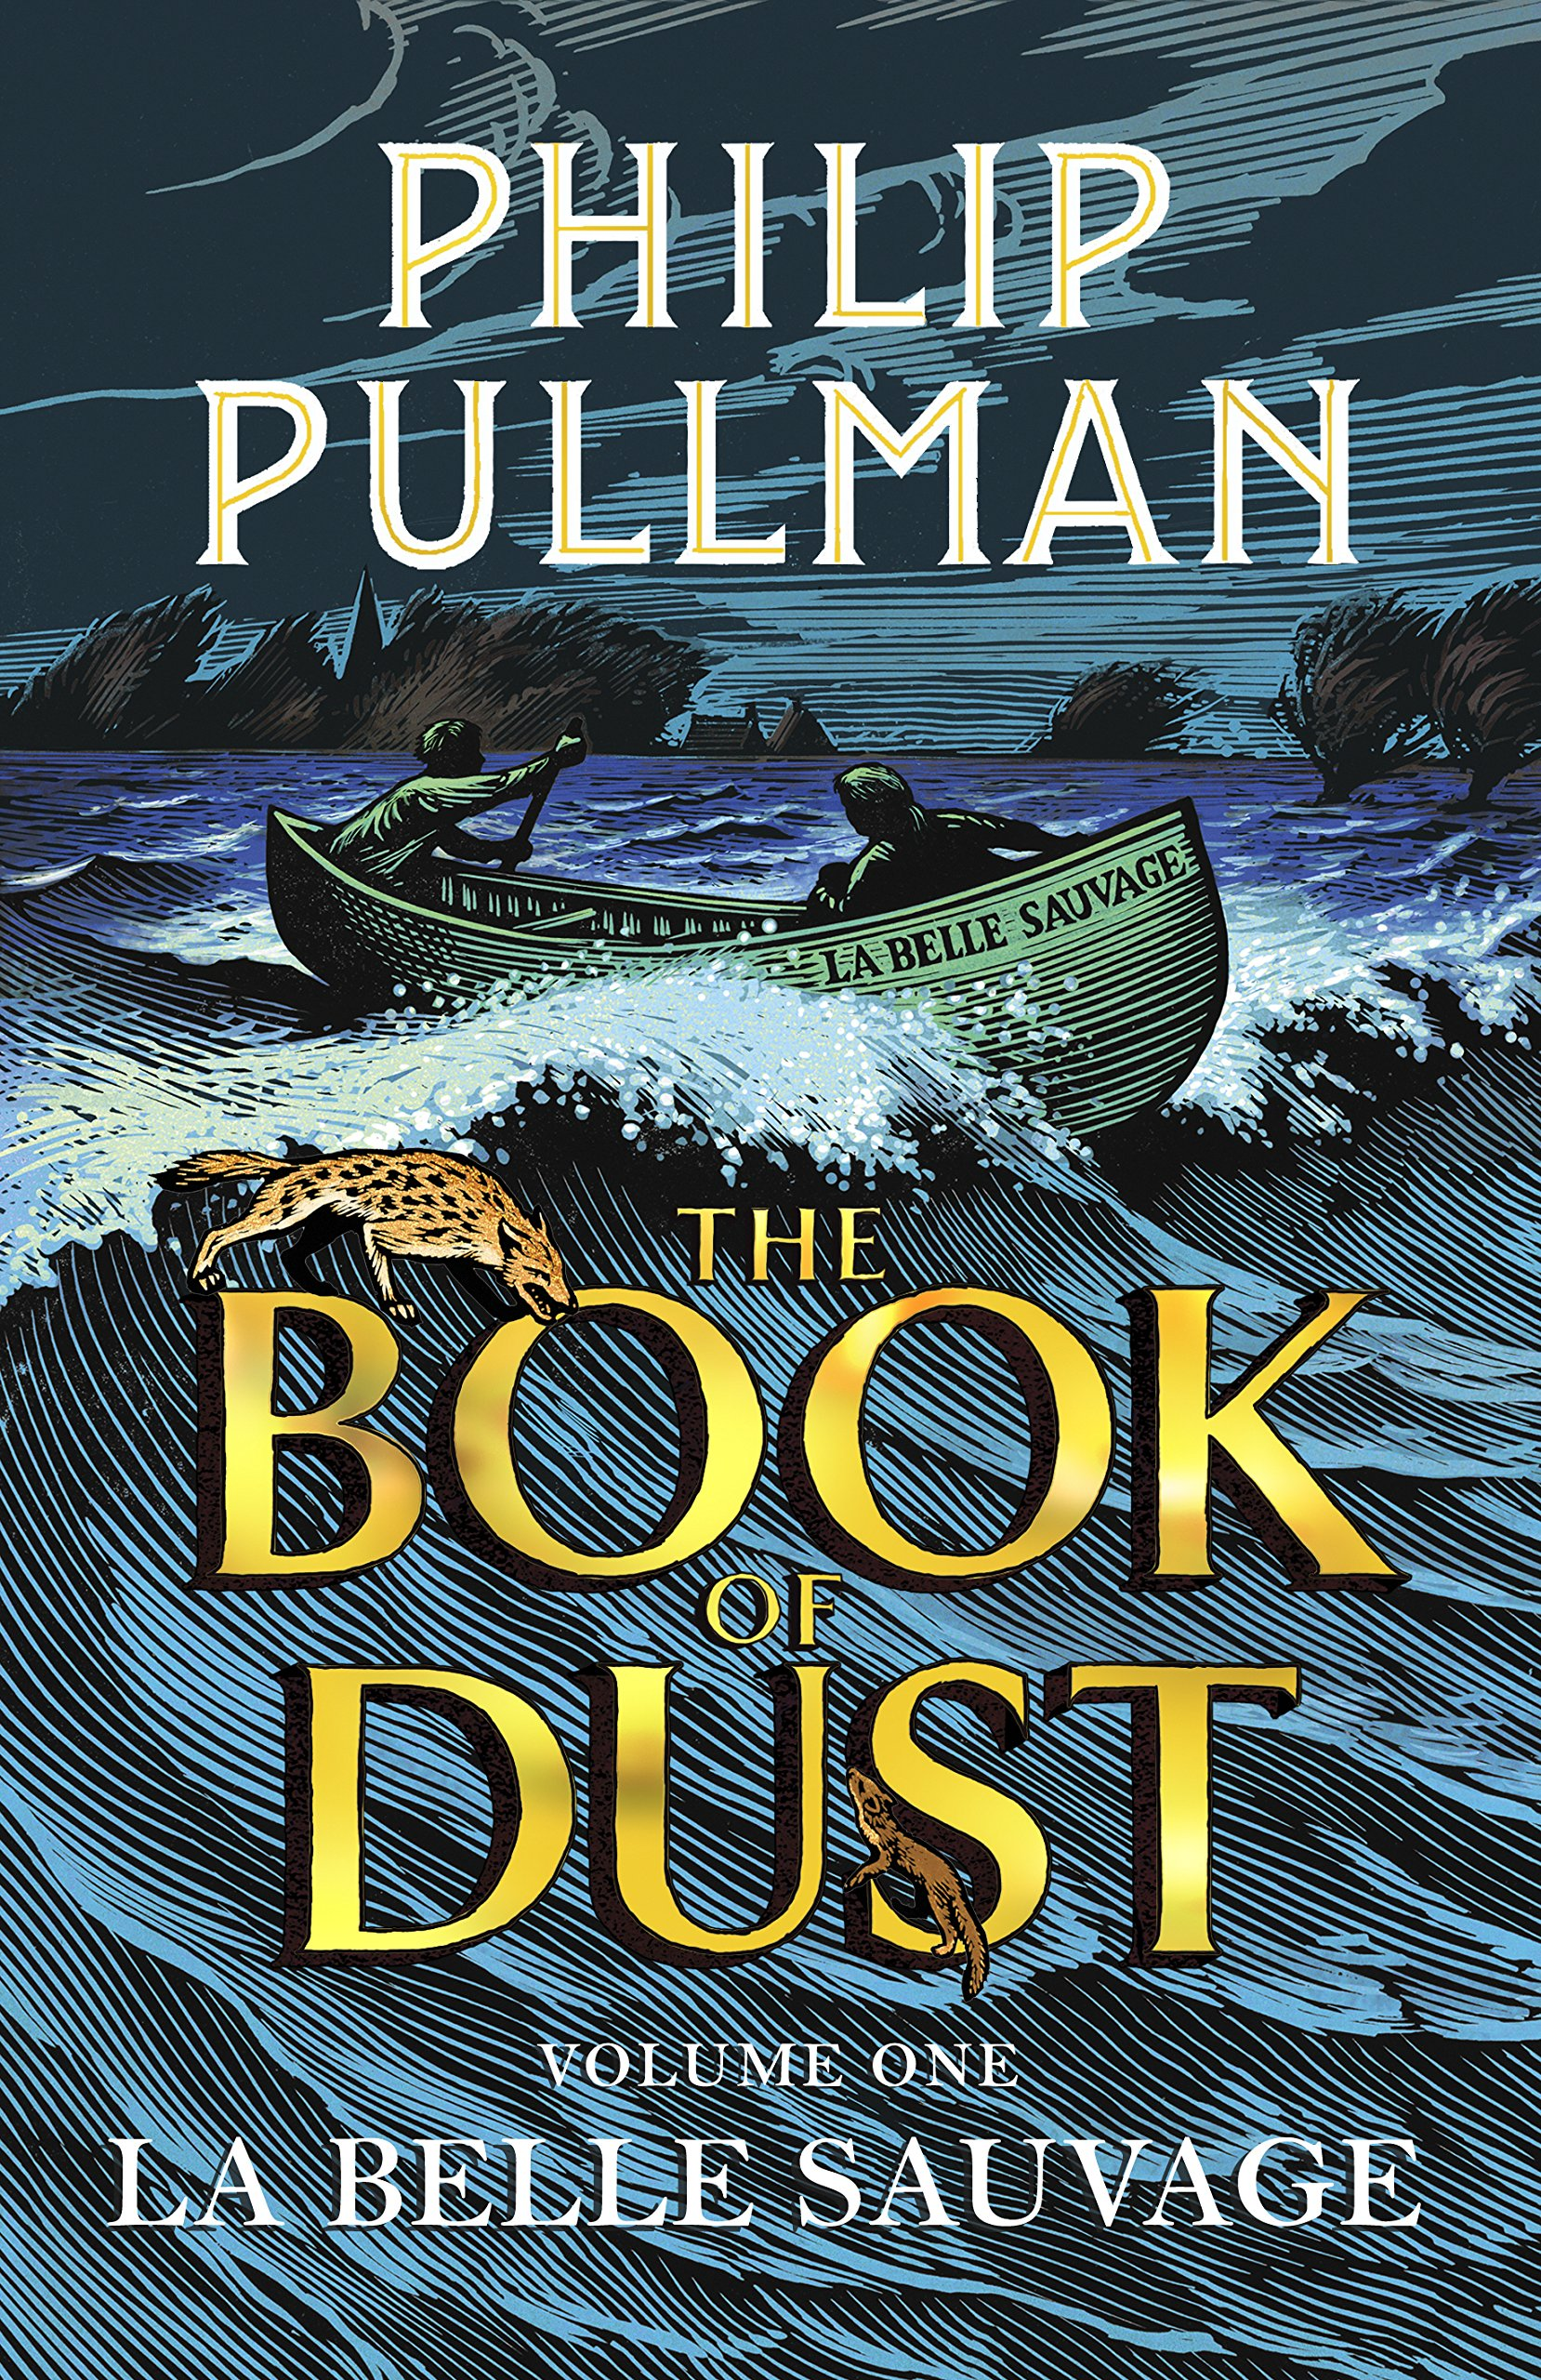 Philip Pullman's <i>Book of Dust</i> could harm independent bookshops